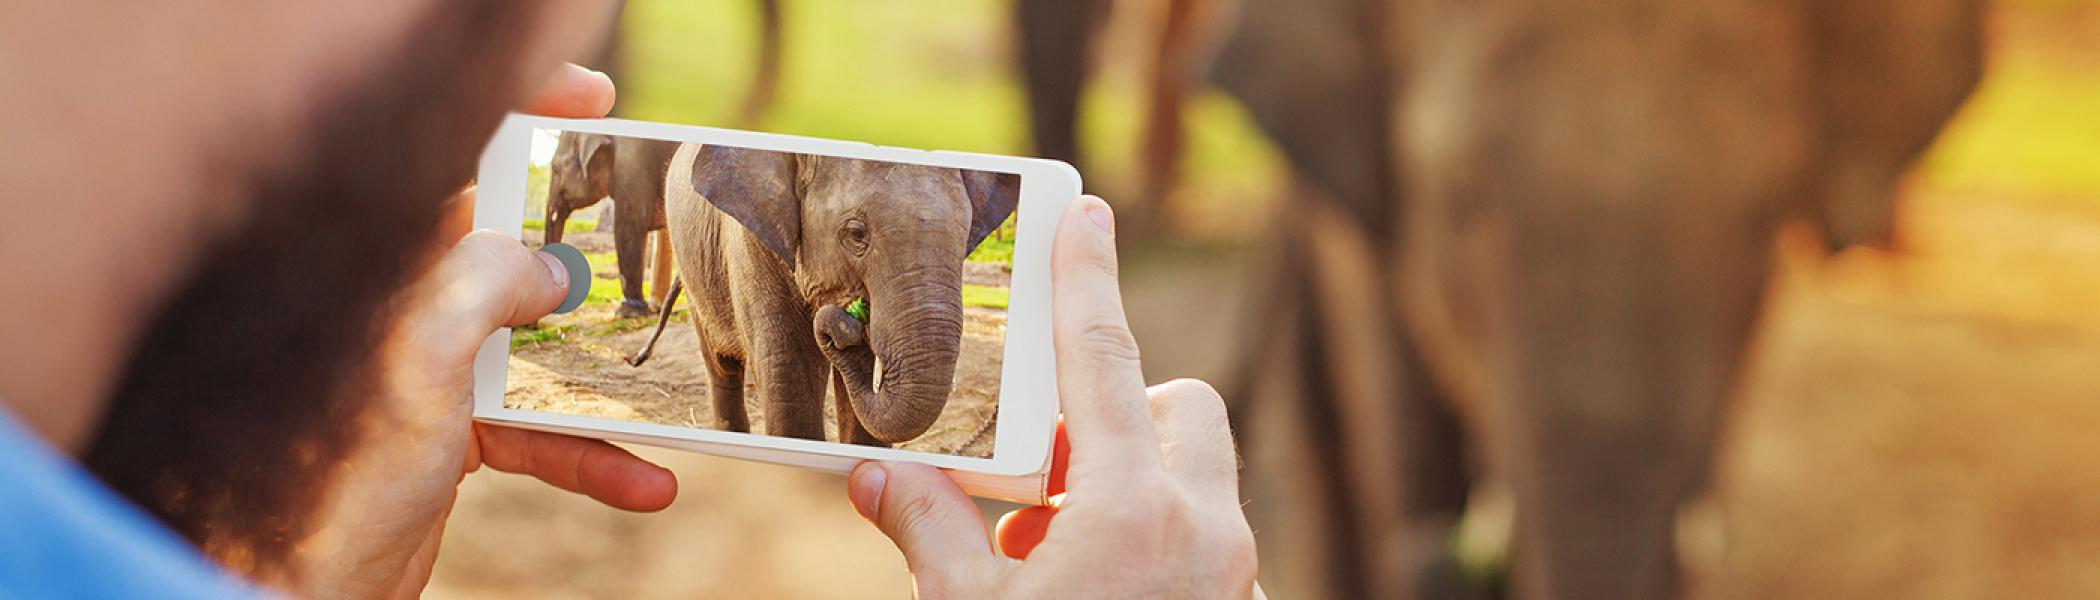 A closeup view of a person using a mobile phone to take a photo of an elephant